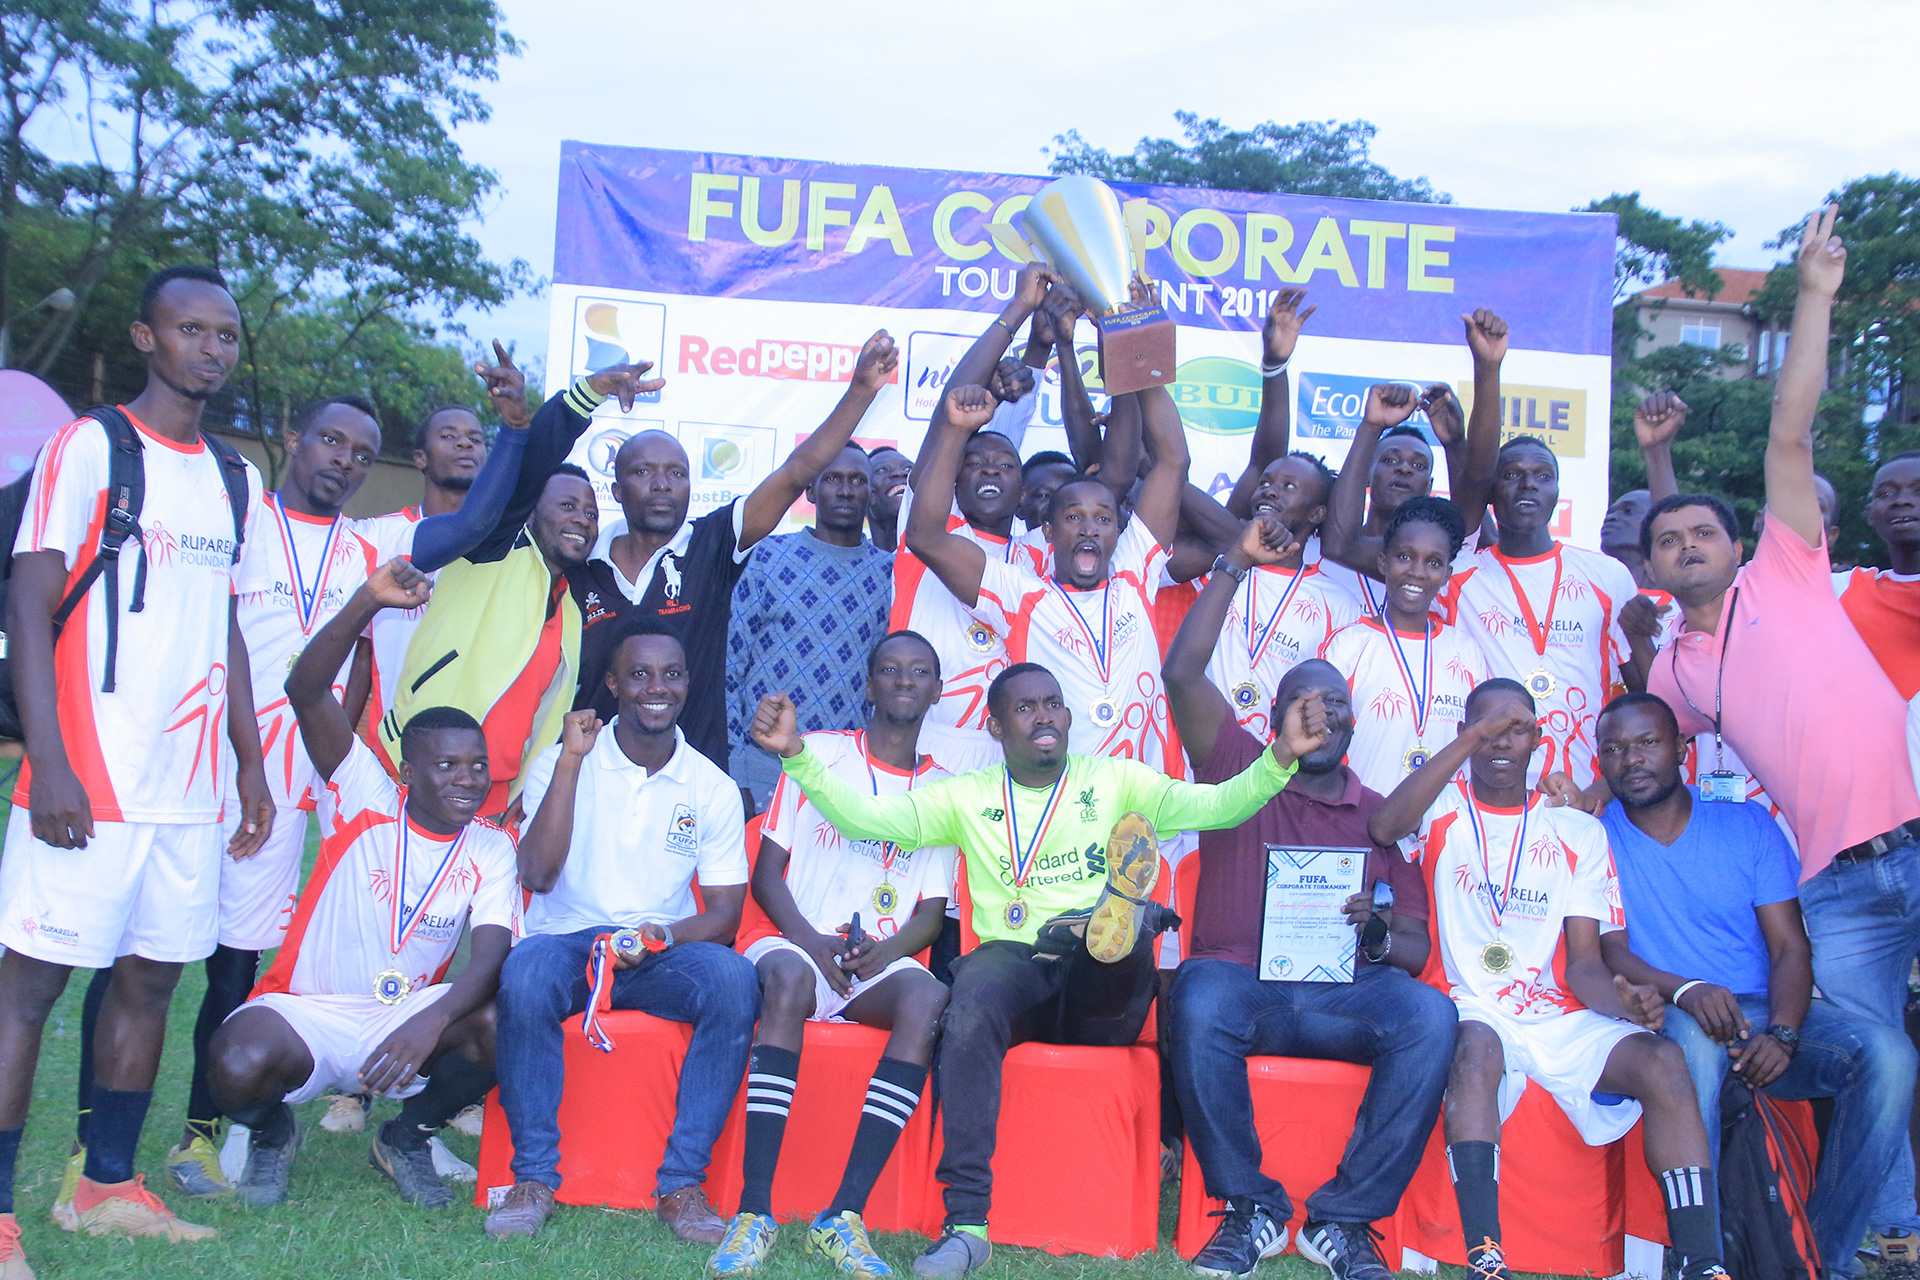 KISU players and staff celebrate winning the 5th FUFA Corporate tournament. (FUFA Photos)